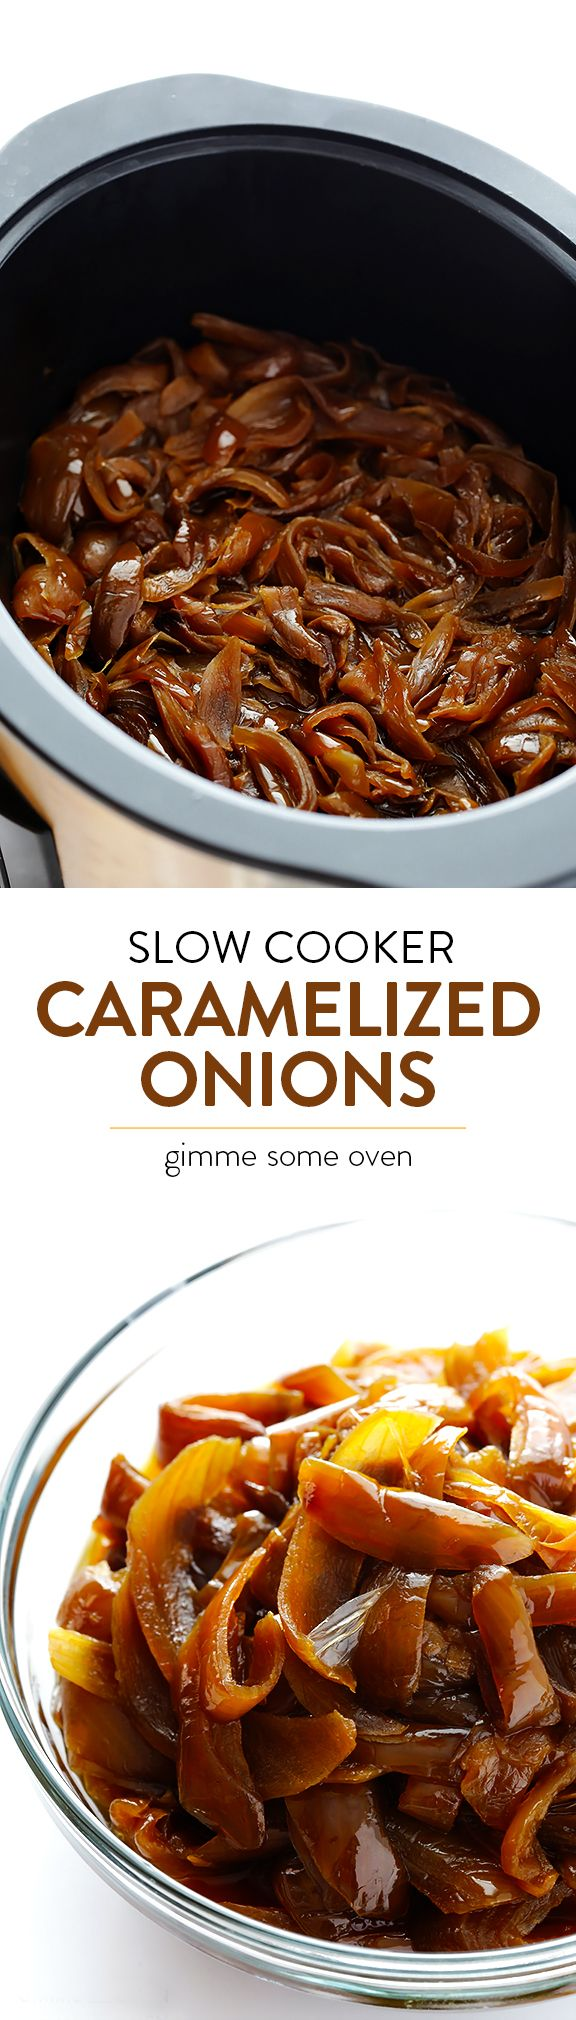 No need to stand over the stove forever!  Let your crock pot do all the work with this easy recipe for Slow Cooker Caramelized Onions.  So easy, and SO tasty! | gimmesomeoven.com